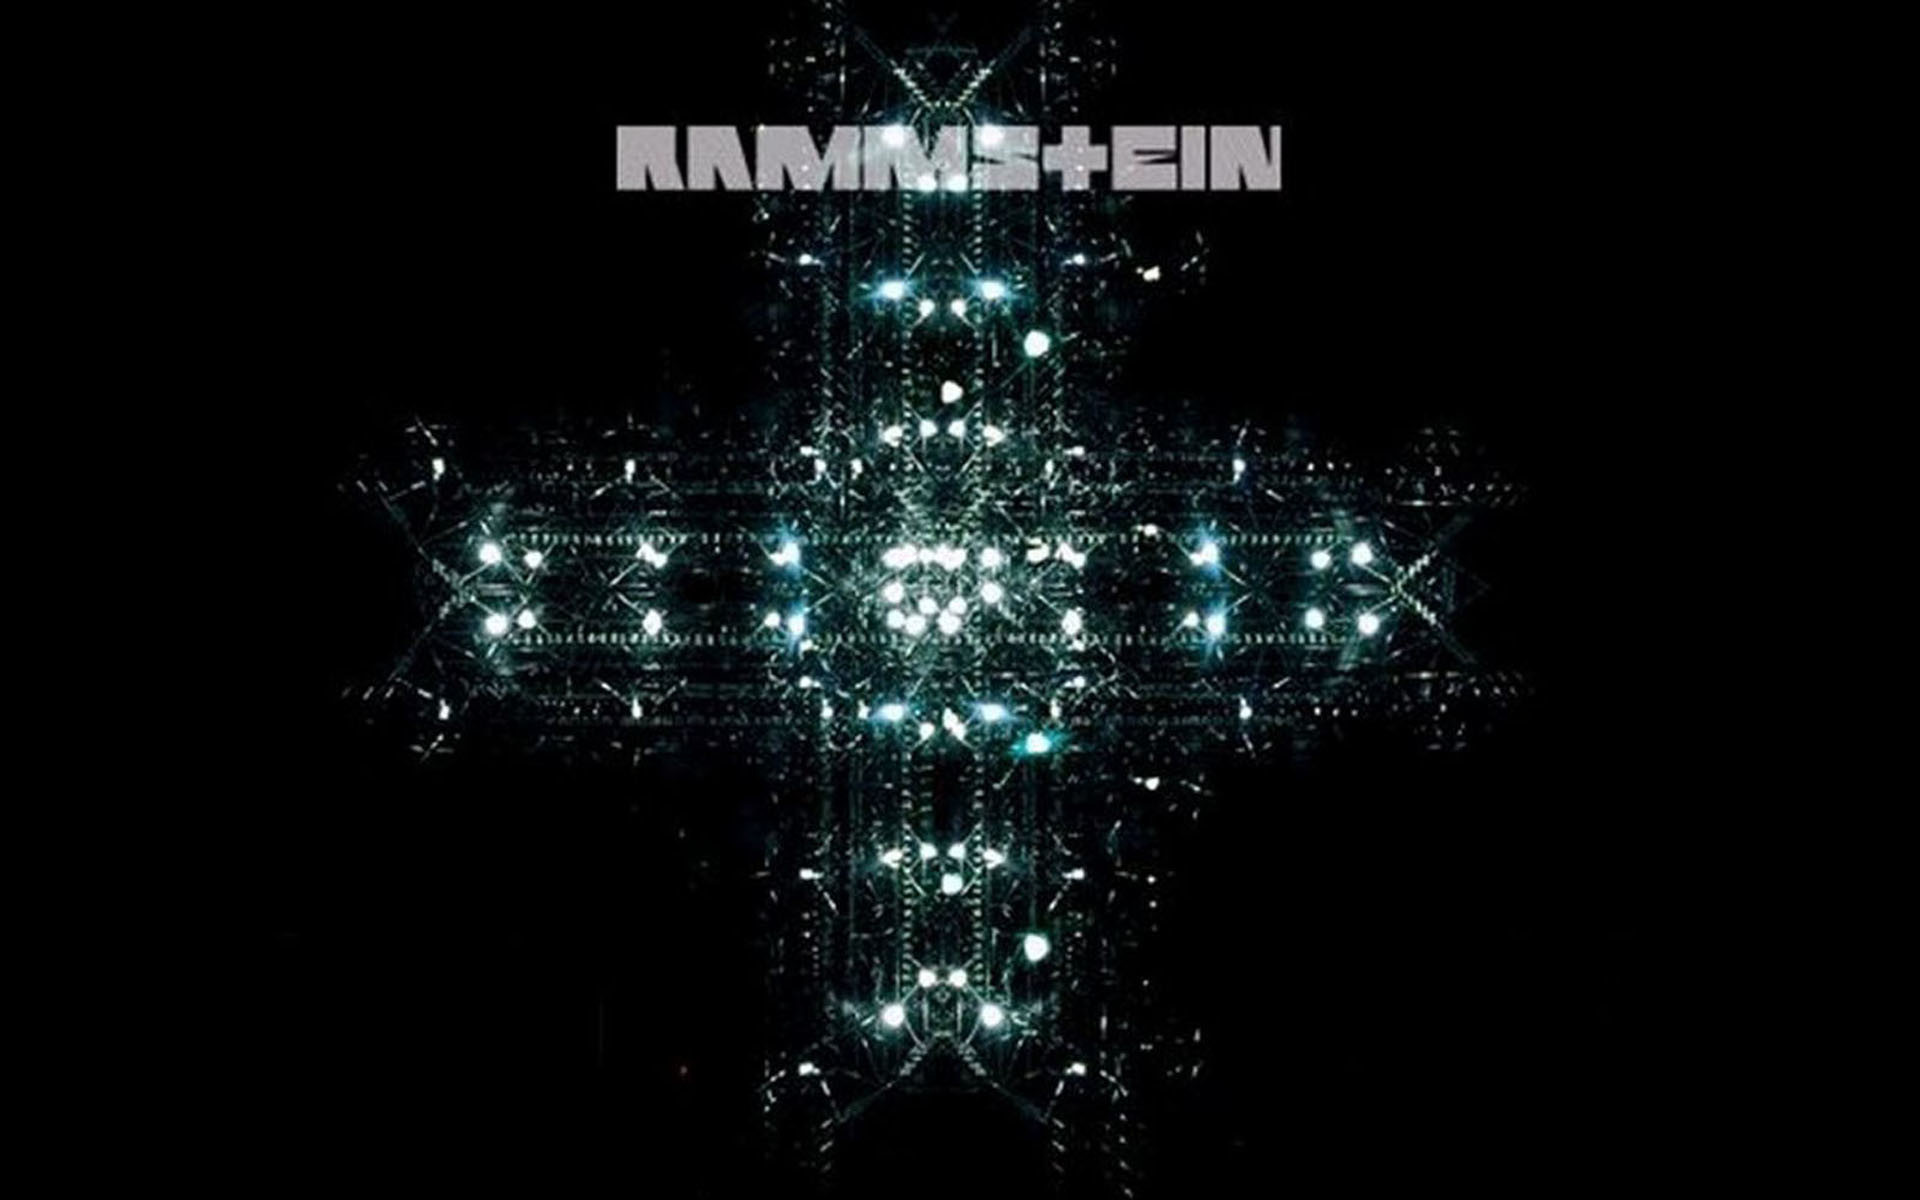 Rammstein Wallpapers HD (57+ images) Edm Background Hd